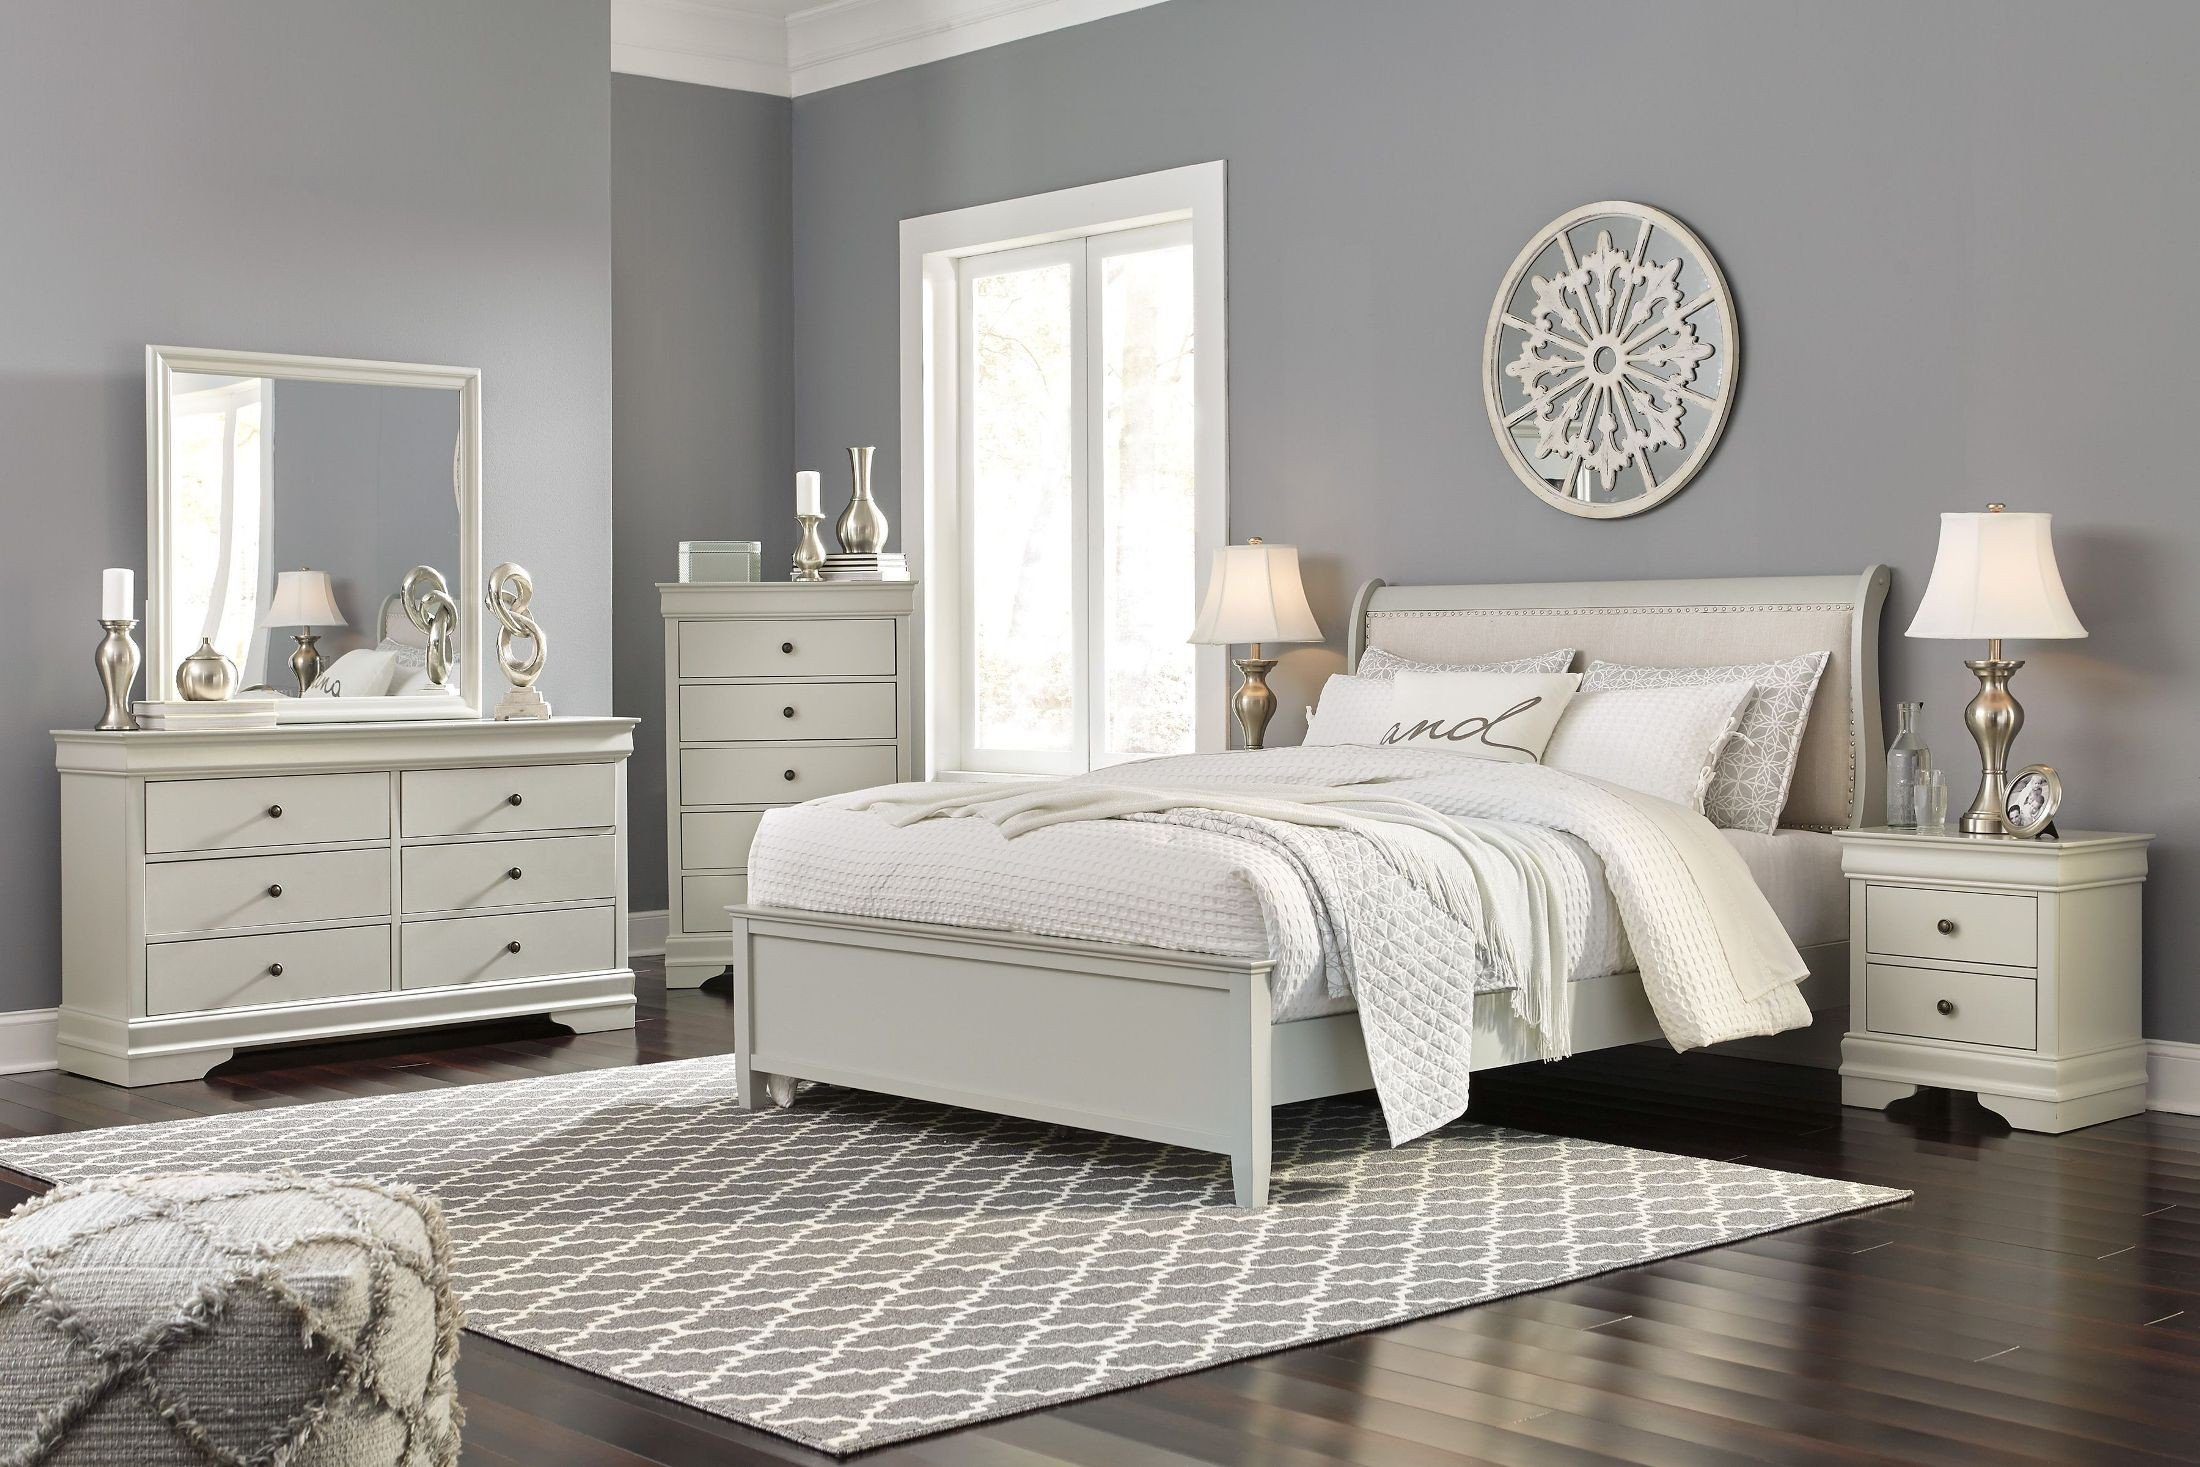 Bedroom Furniture Hardware Replacement New Emma Mason Signature Jarred 5 Piece Sleigh Bedroom Set In Gray